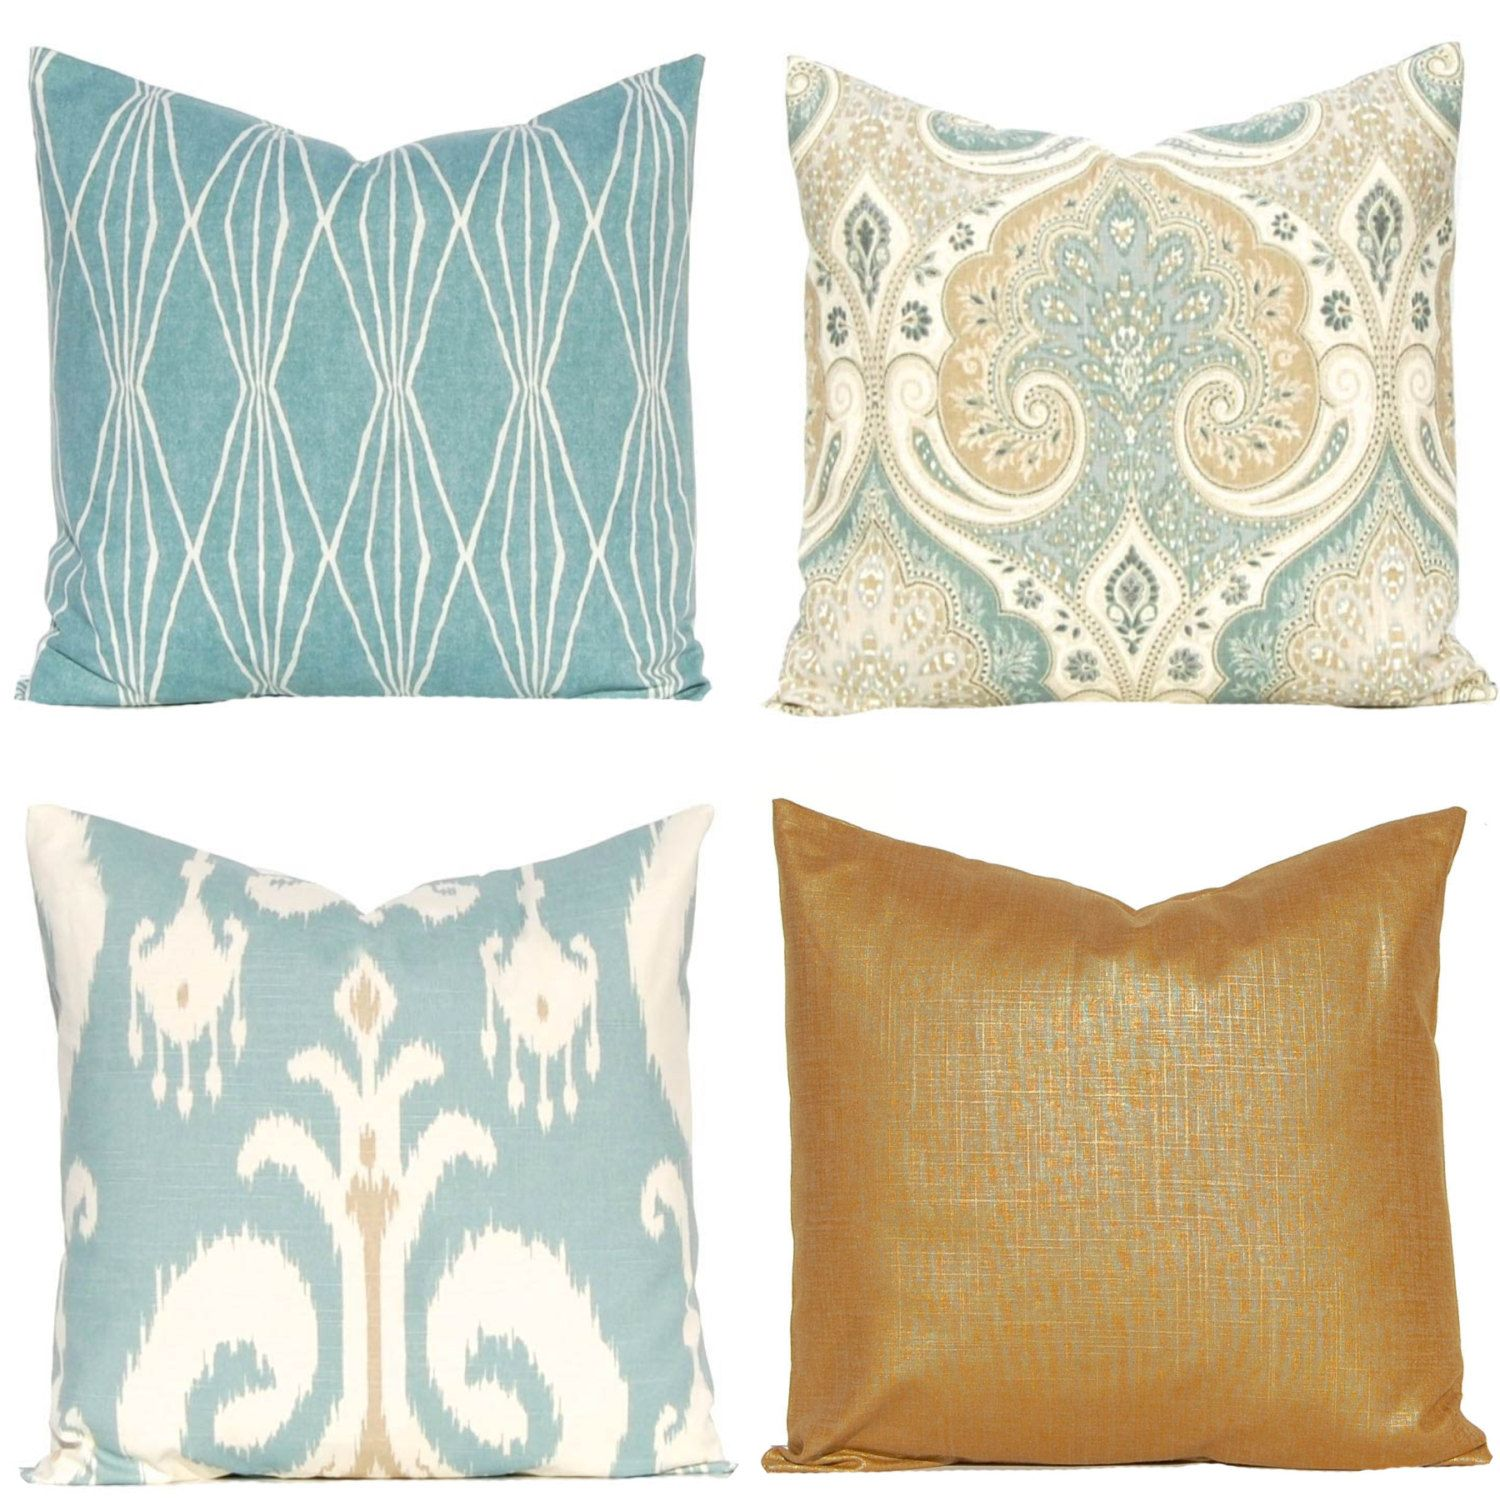 Decorative pillow covers sofa pillow covers throw pillow covers